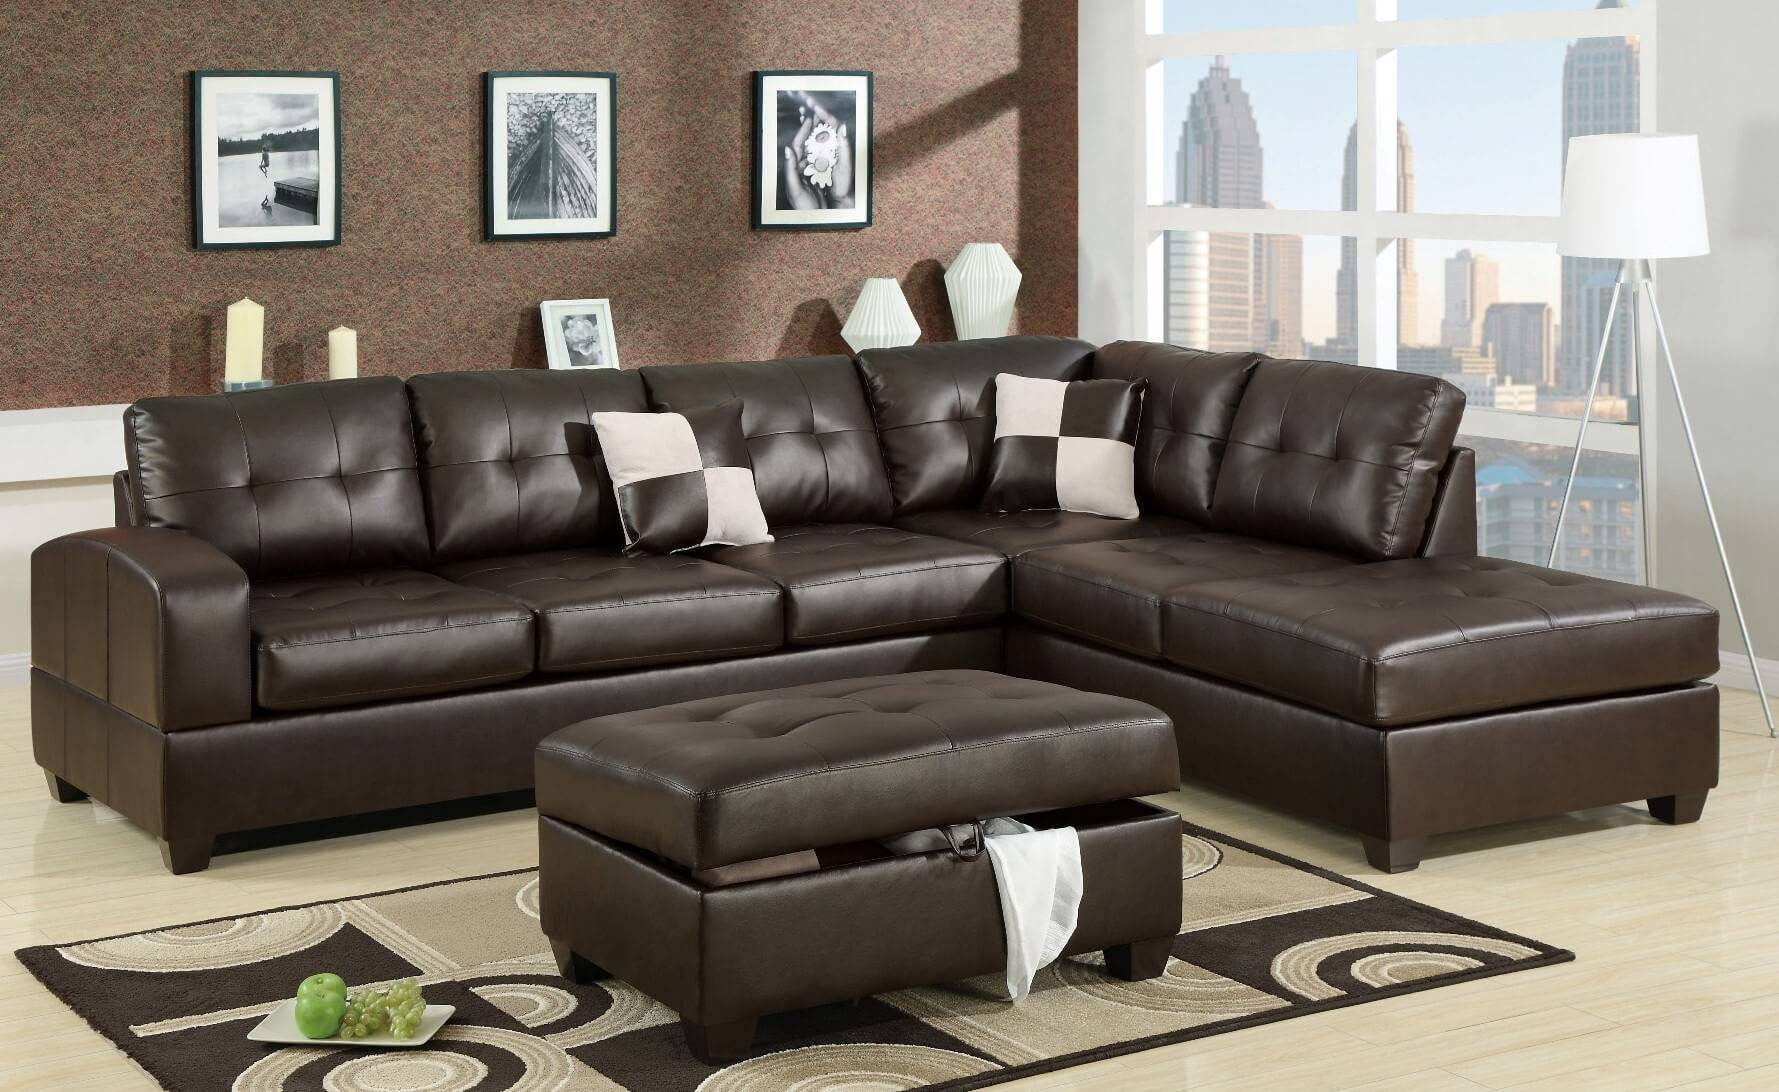 Topic: High Quality Fabric Sectional Sofa throughout Quality Sectional Sofa (Image 30 of 30)